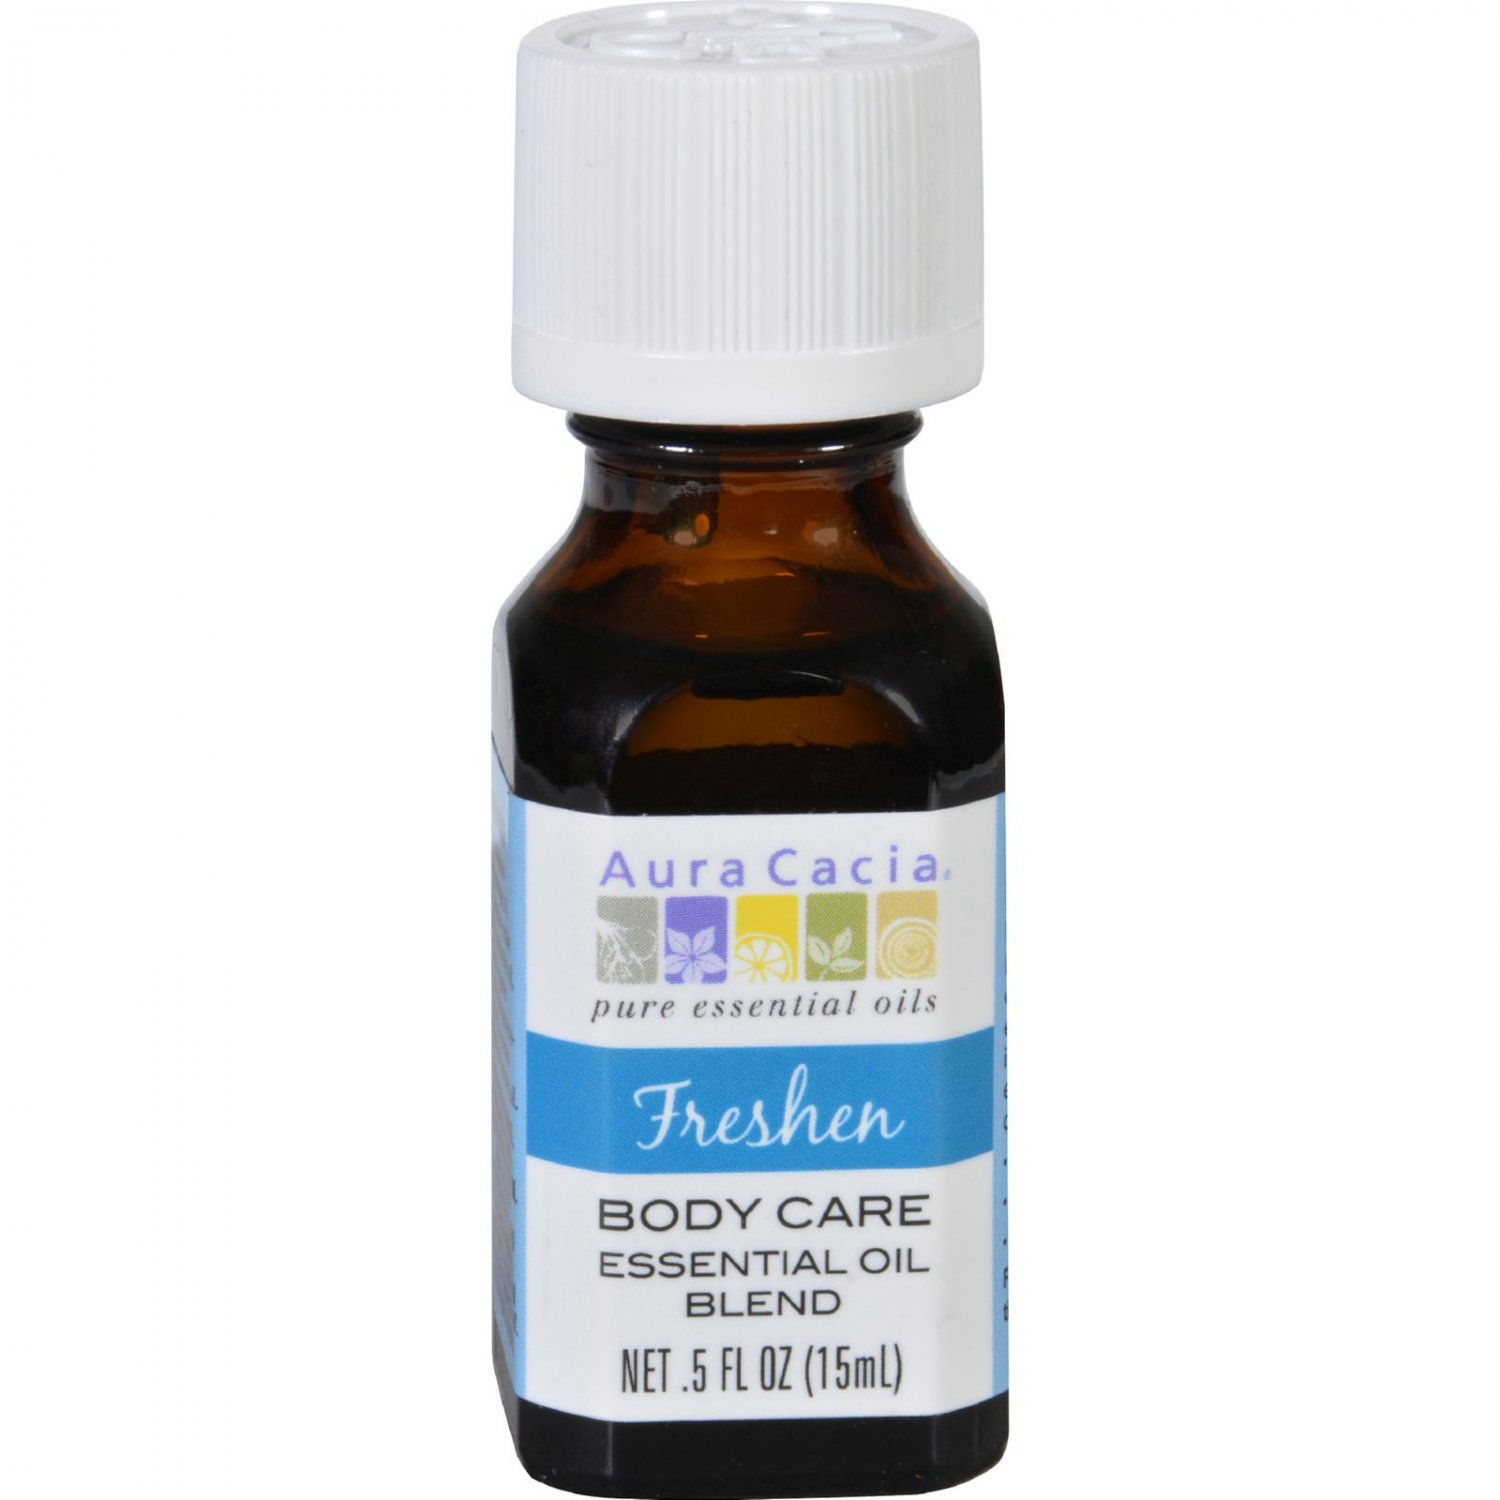 Aura Cacia Essential Oil Blend - Body - Freshen - .5 oz